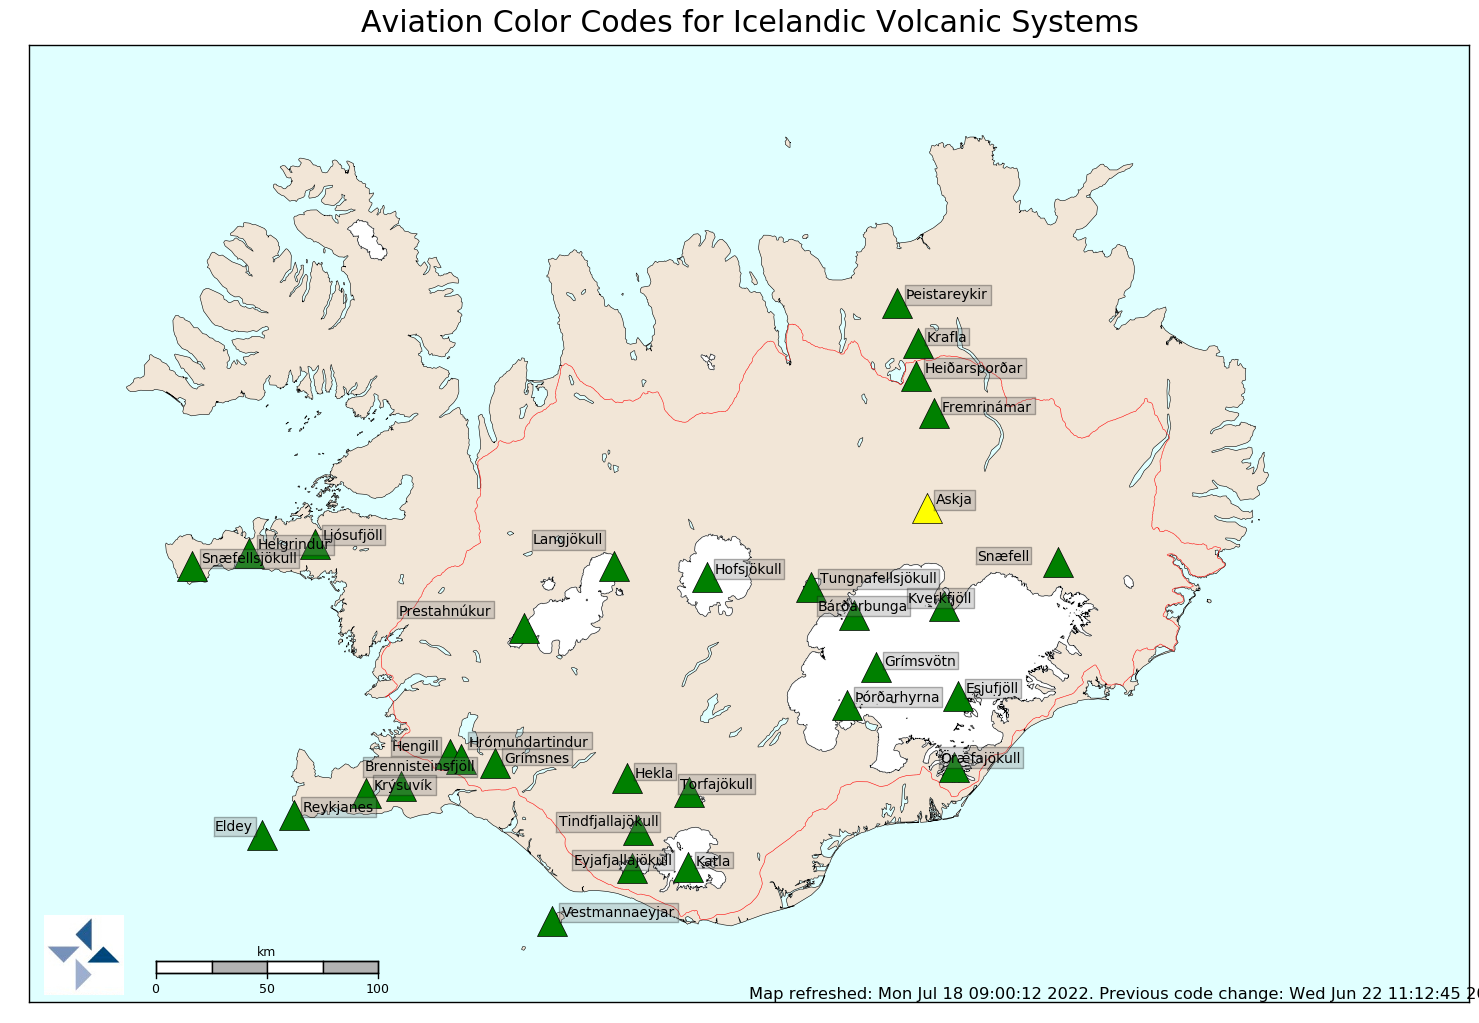 Aviation Colour Code Map Volcanic Eruptions Icelandic - Map of us volcanoes